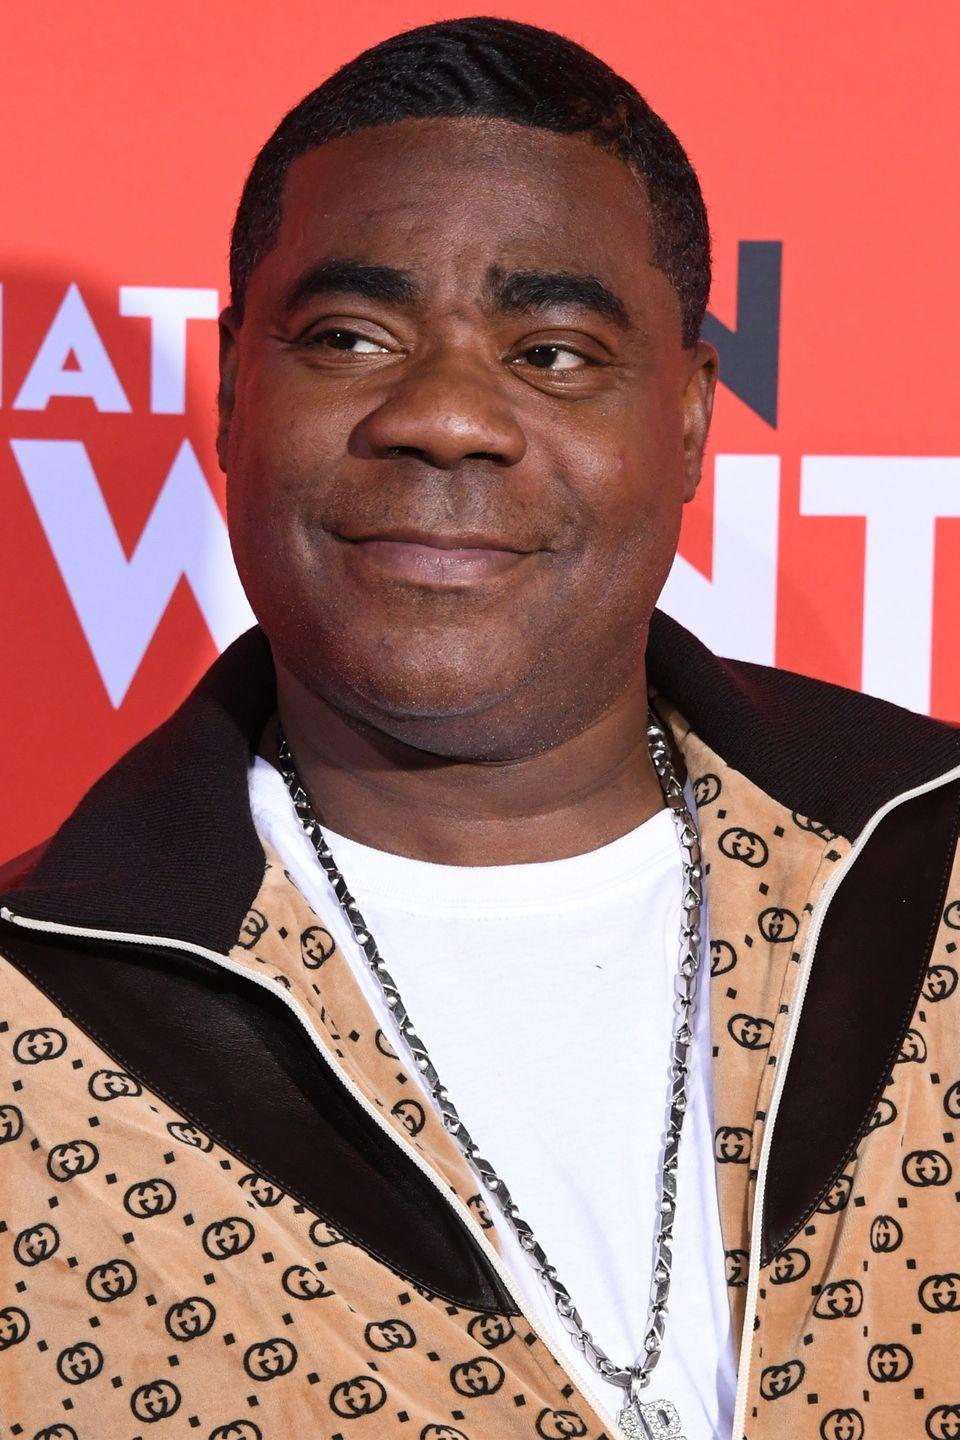 "<p>Morgan dropped out of high school to pursue his career, and he <a href=""https://www.huffingtonpost.com/2010/04/11/tracy-morgan-im-glad-i-dr_n_533179.html"" rel=""nofollow noopener"" target=""_blank"" data-ylk=""slk:says"" class=""link rapid-noclick-resp"">says</a> he's very happy he made the decision to do so.</p><p>""I'm glad I dropped out of high school, man. I wouldn't be where I'm at. I would have had a net. I'm glad I didn't have anything to fall back on, man, because that made me go for my dreams that much harder.""</p>"